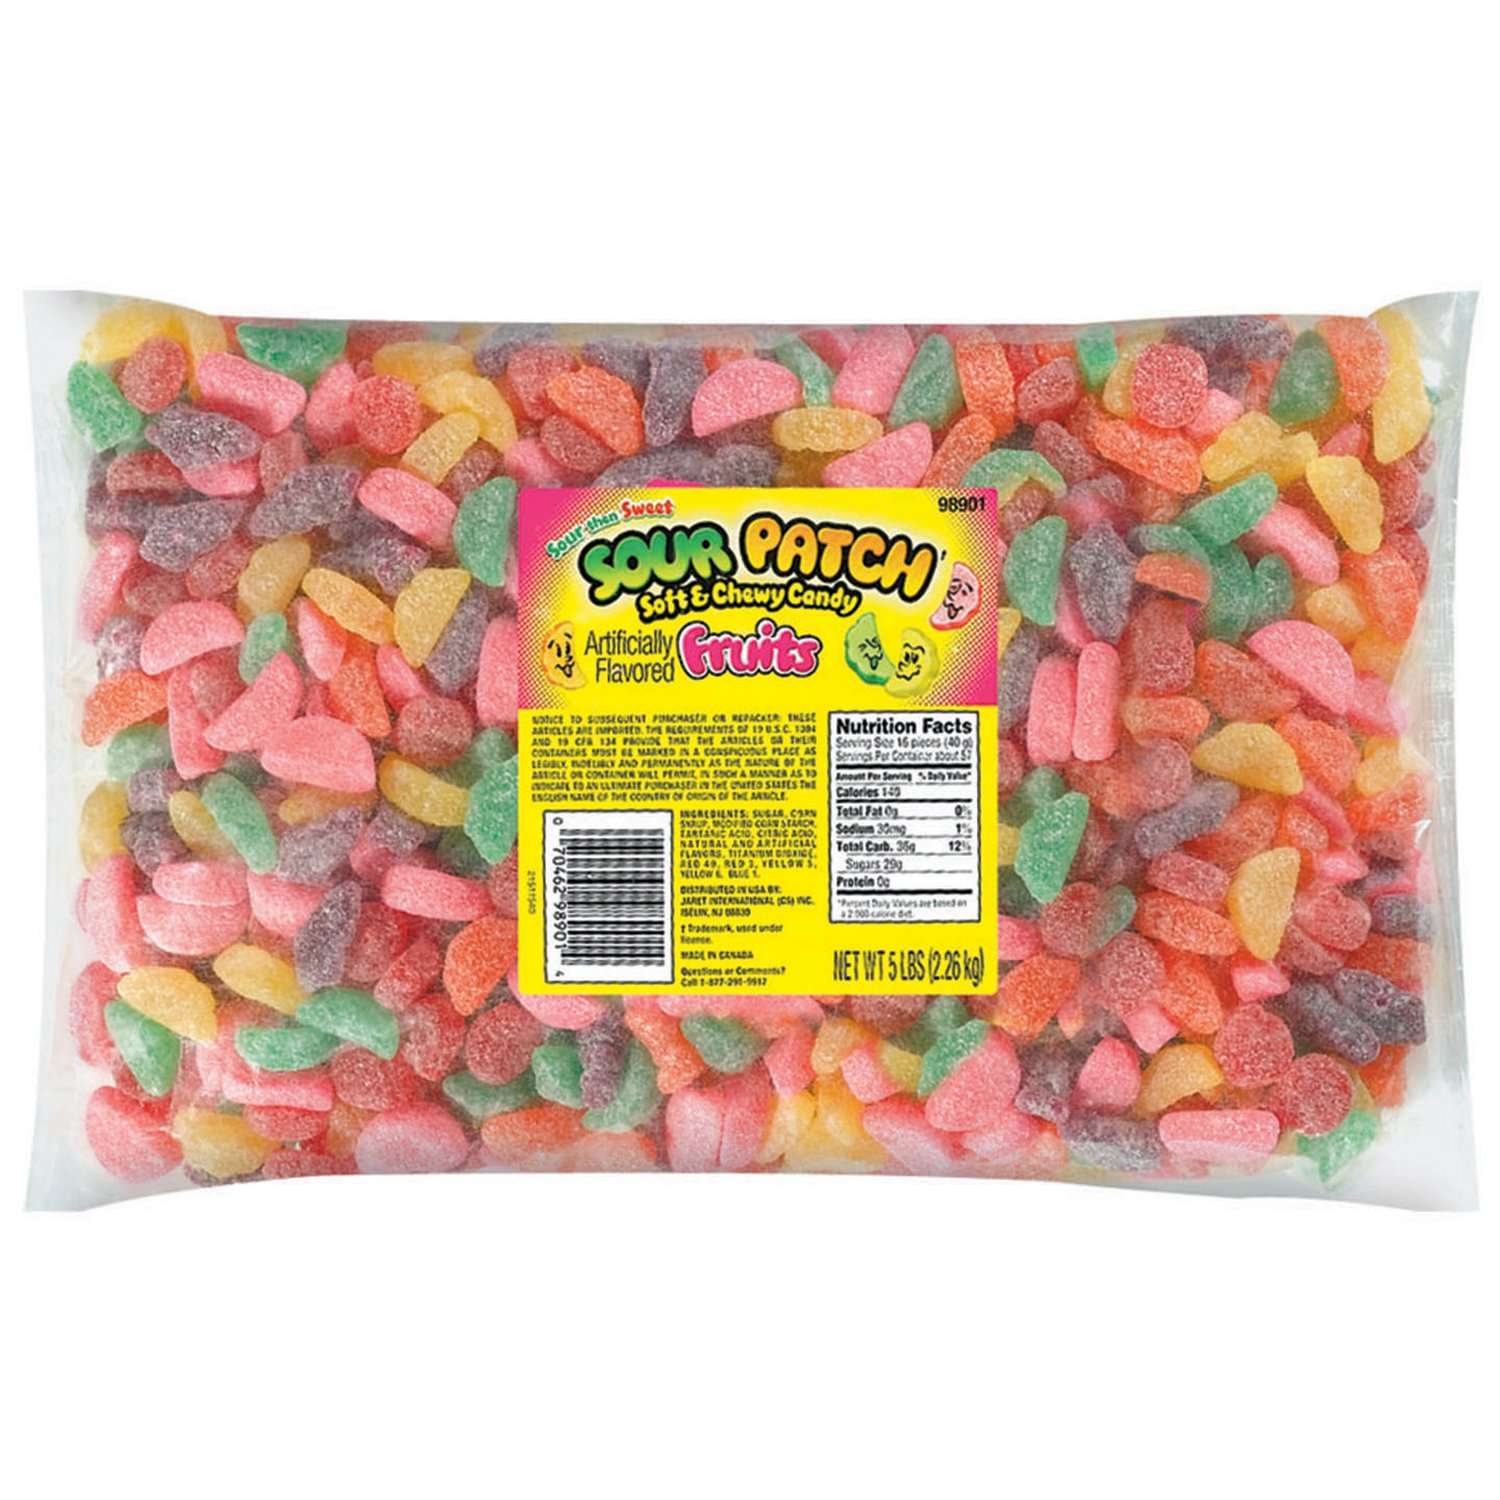 Sour Patch Soft & Chewy Candy, Fruits, 5 Pound Bag (Pack of 6) by Sour Patch (Image #1)